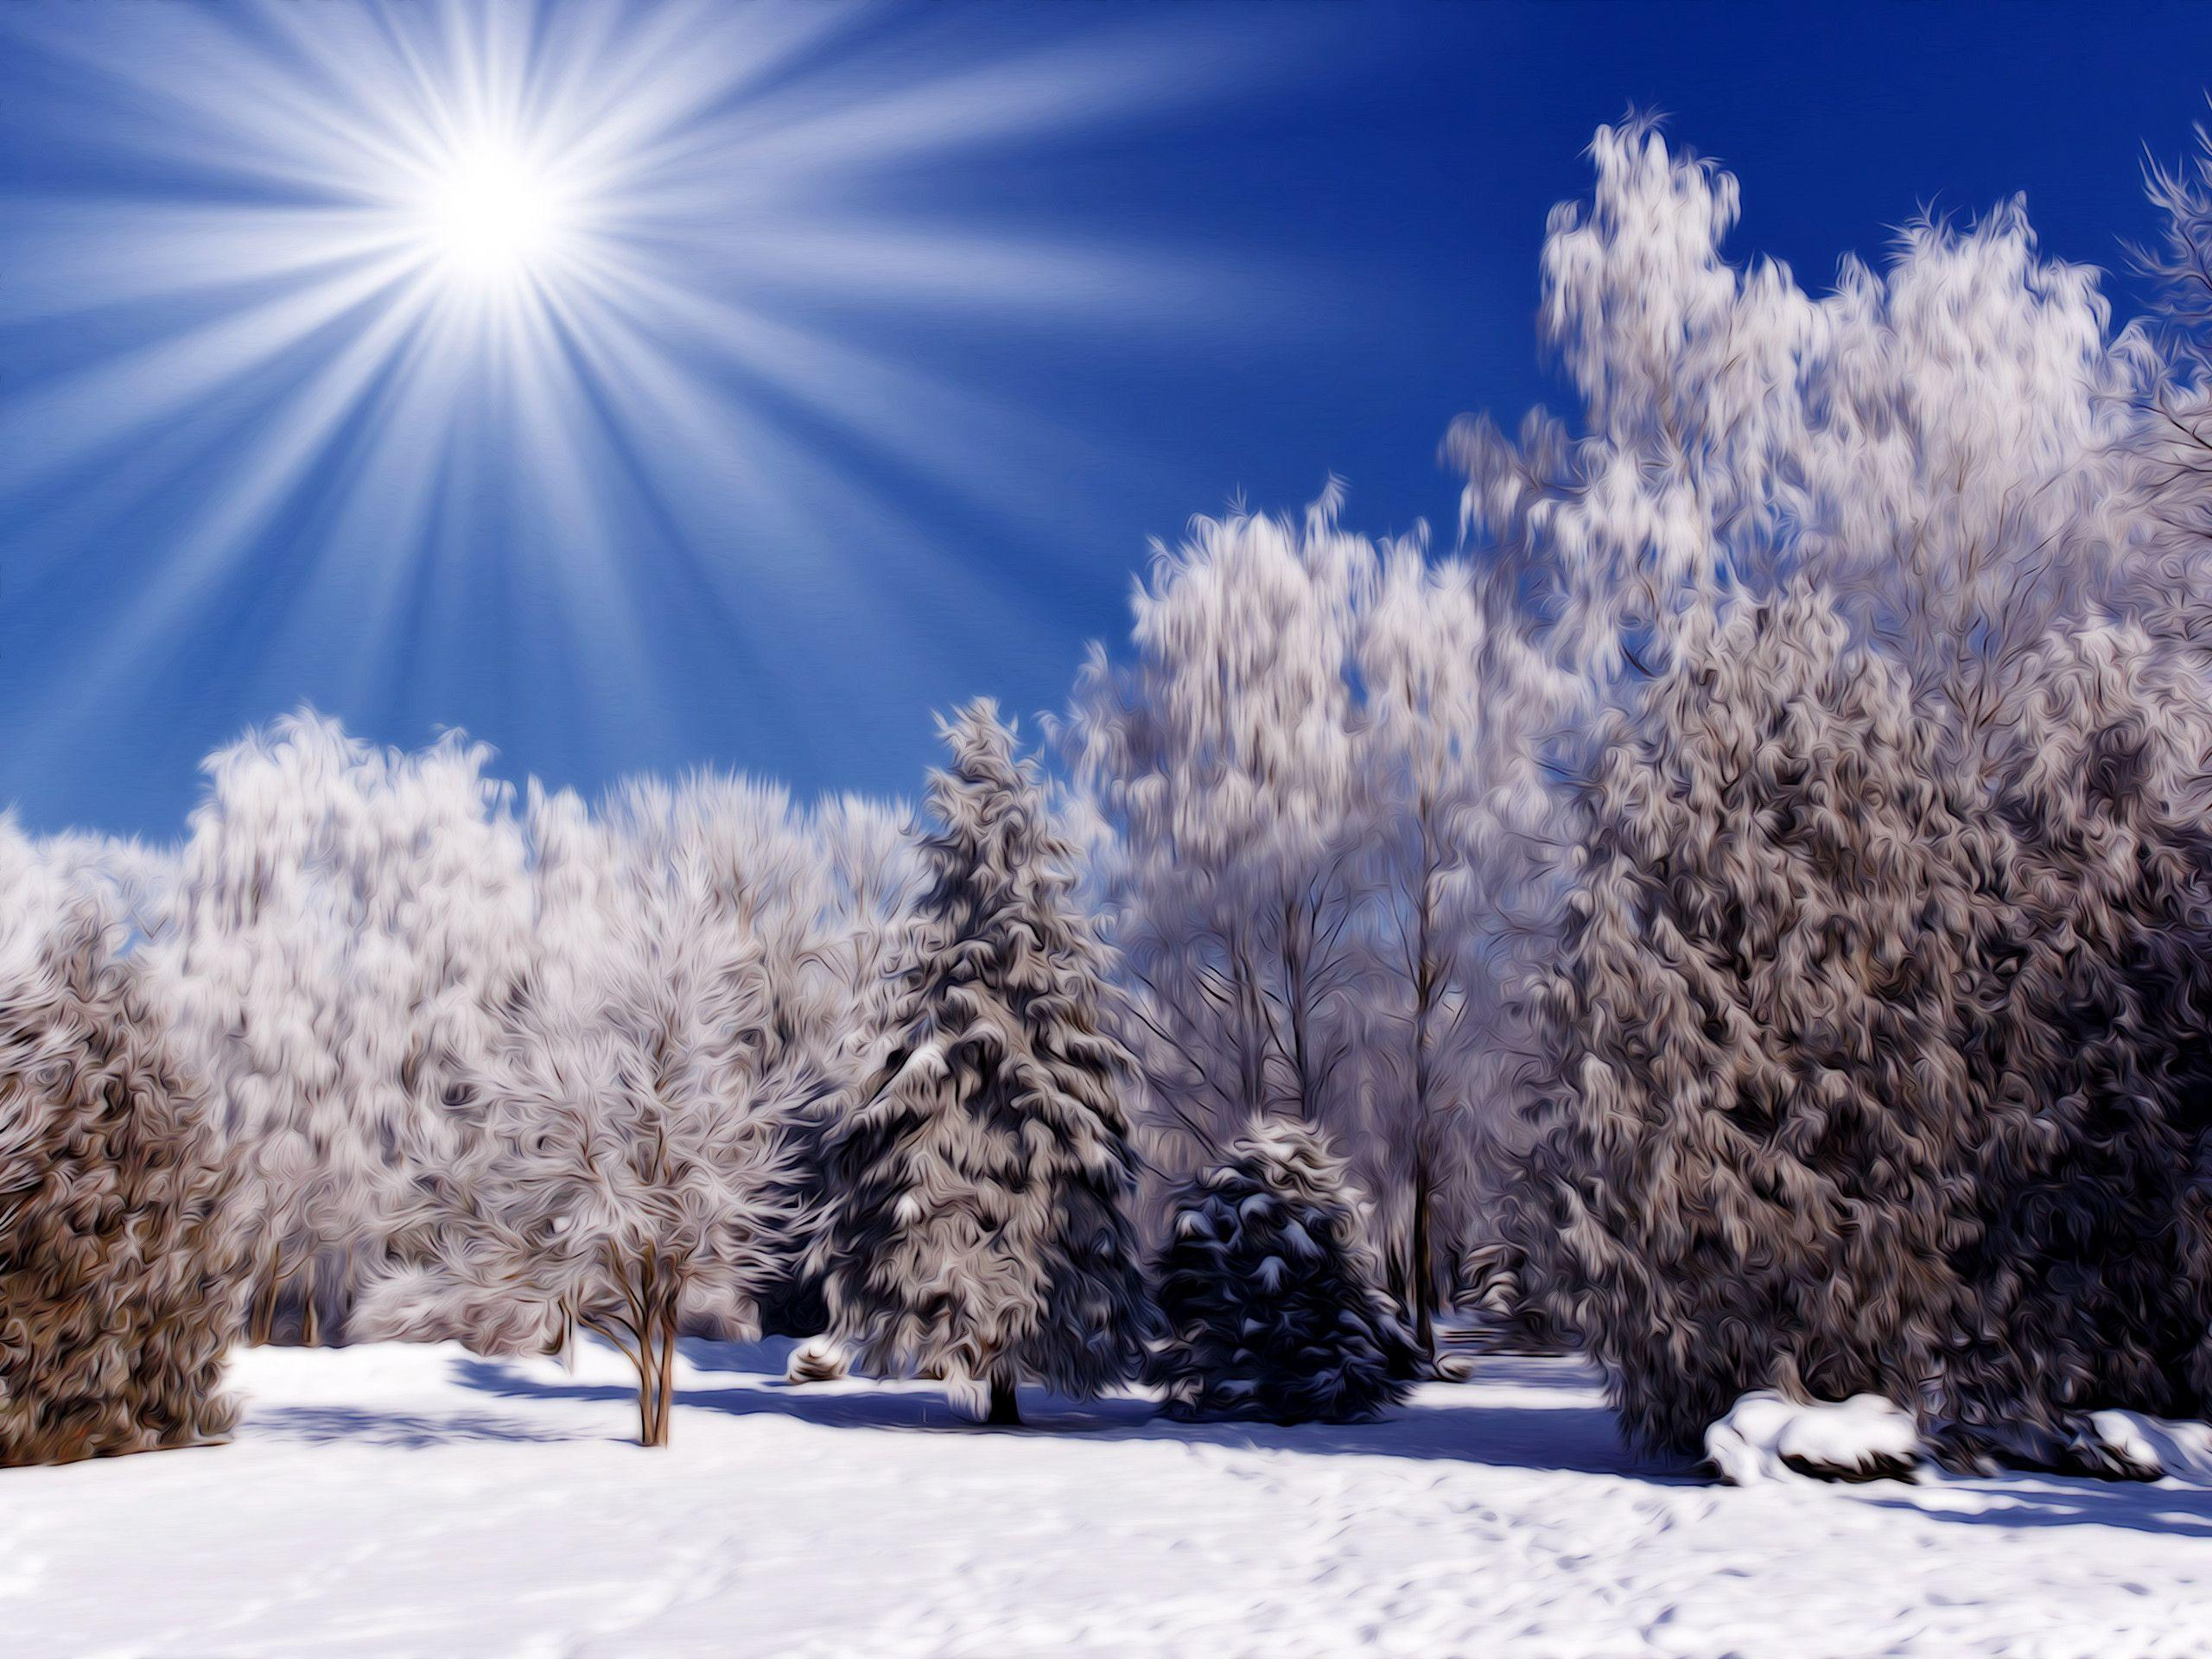 Winter Scenes Wallpapers Wallpaper Cave